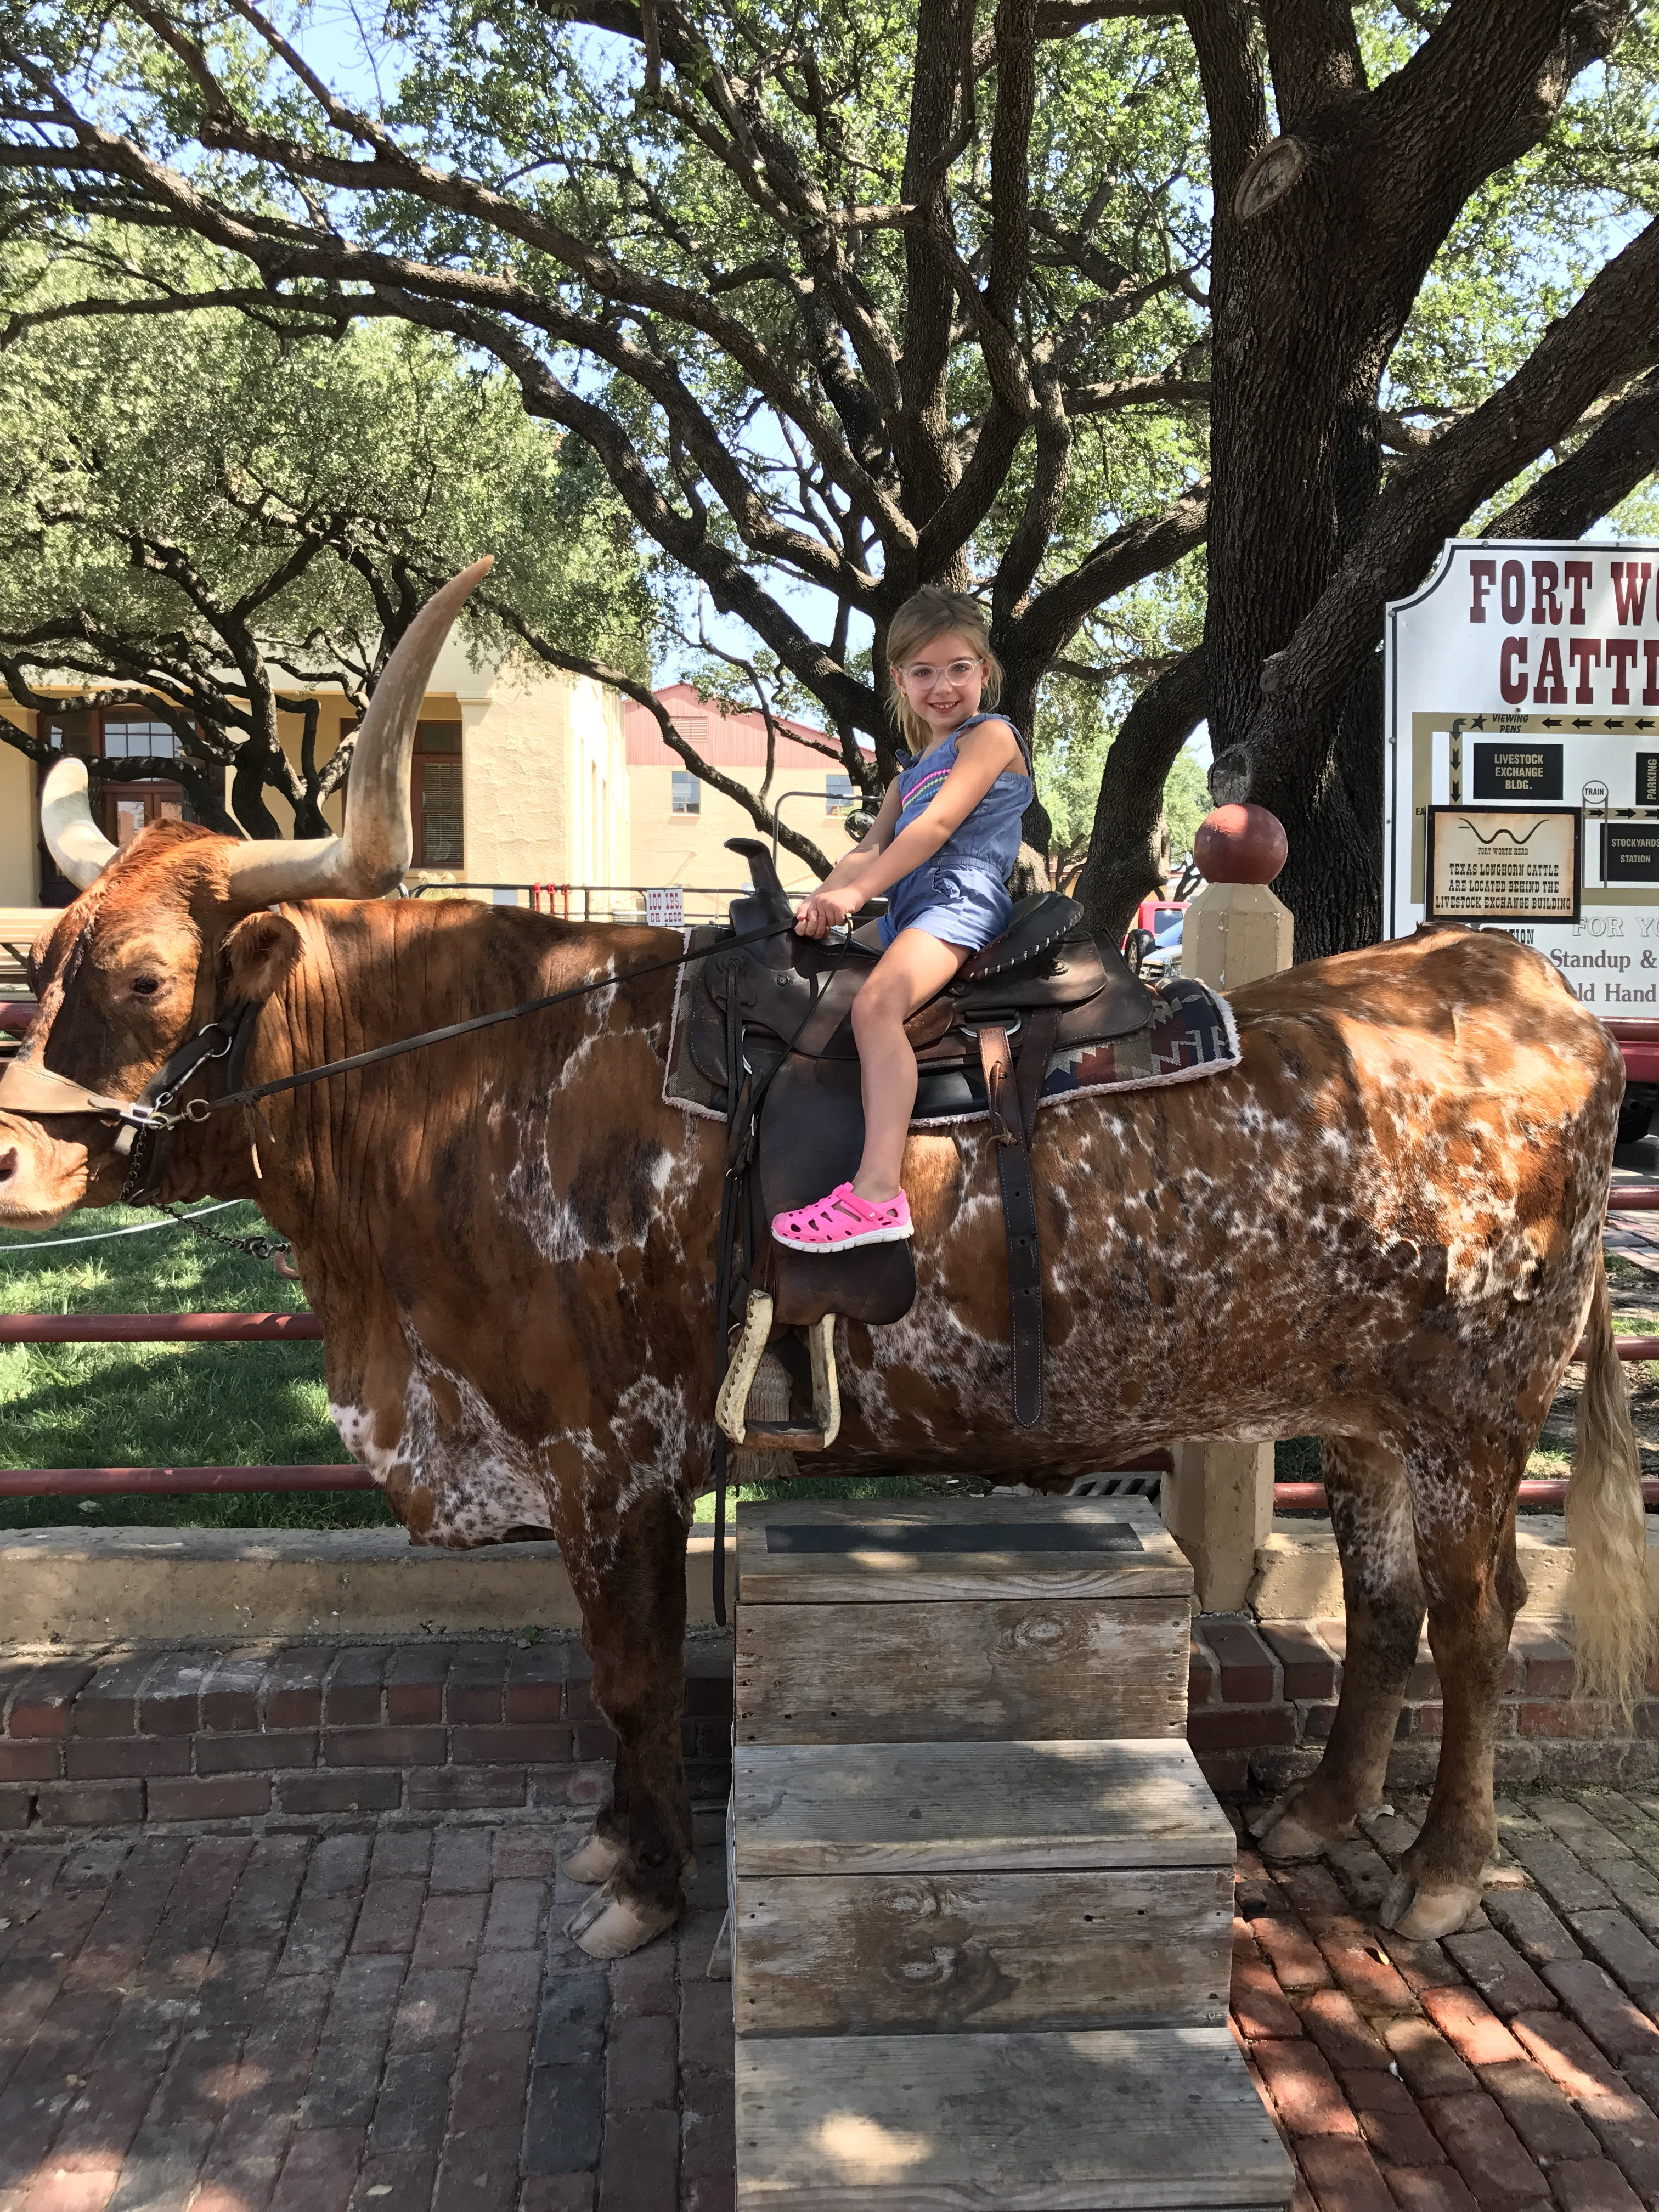 Texas Summer Family Fun